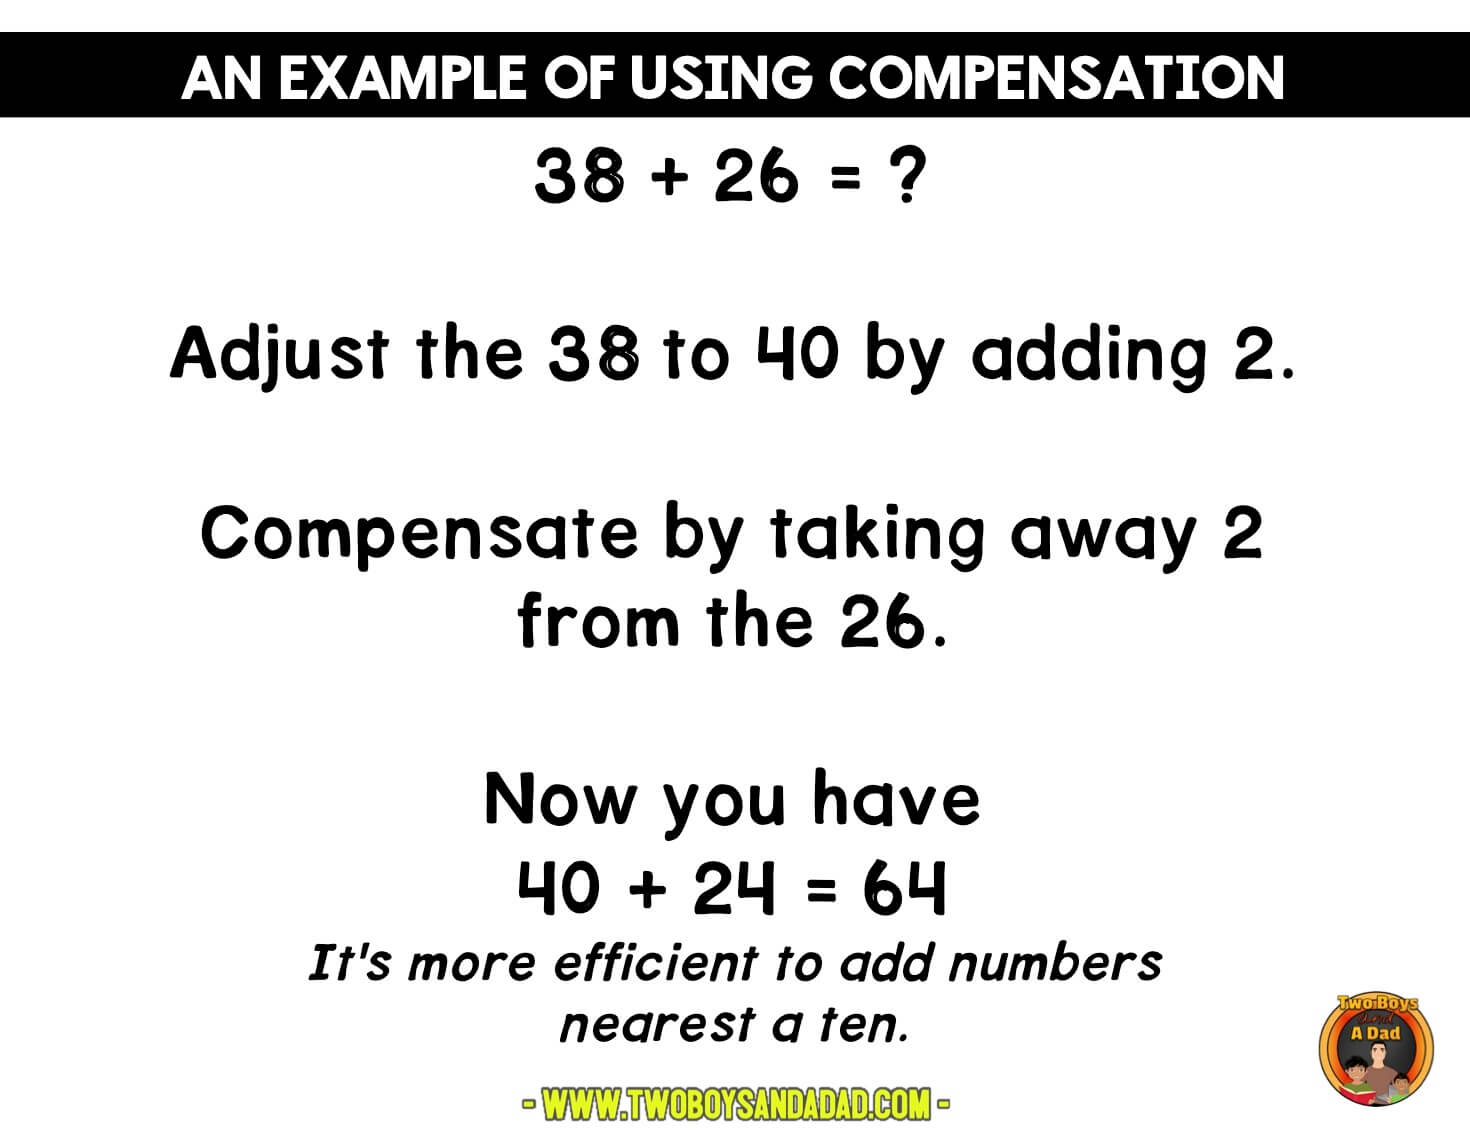 An example of the compensation strategy